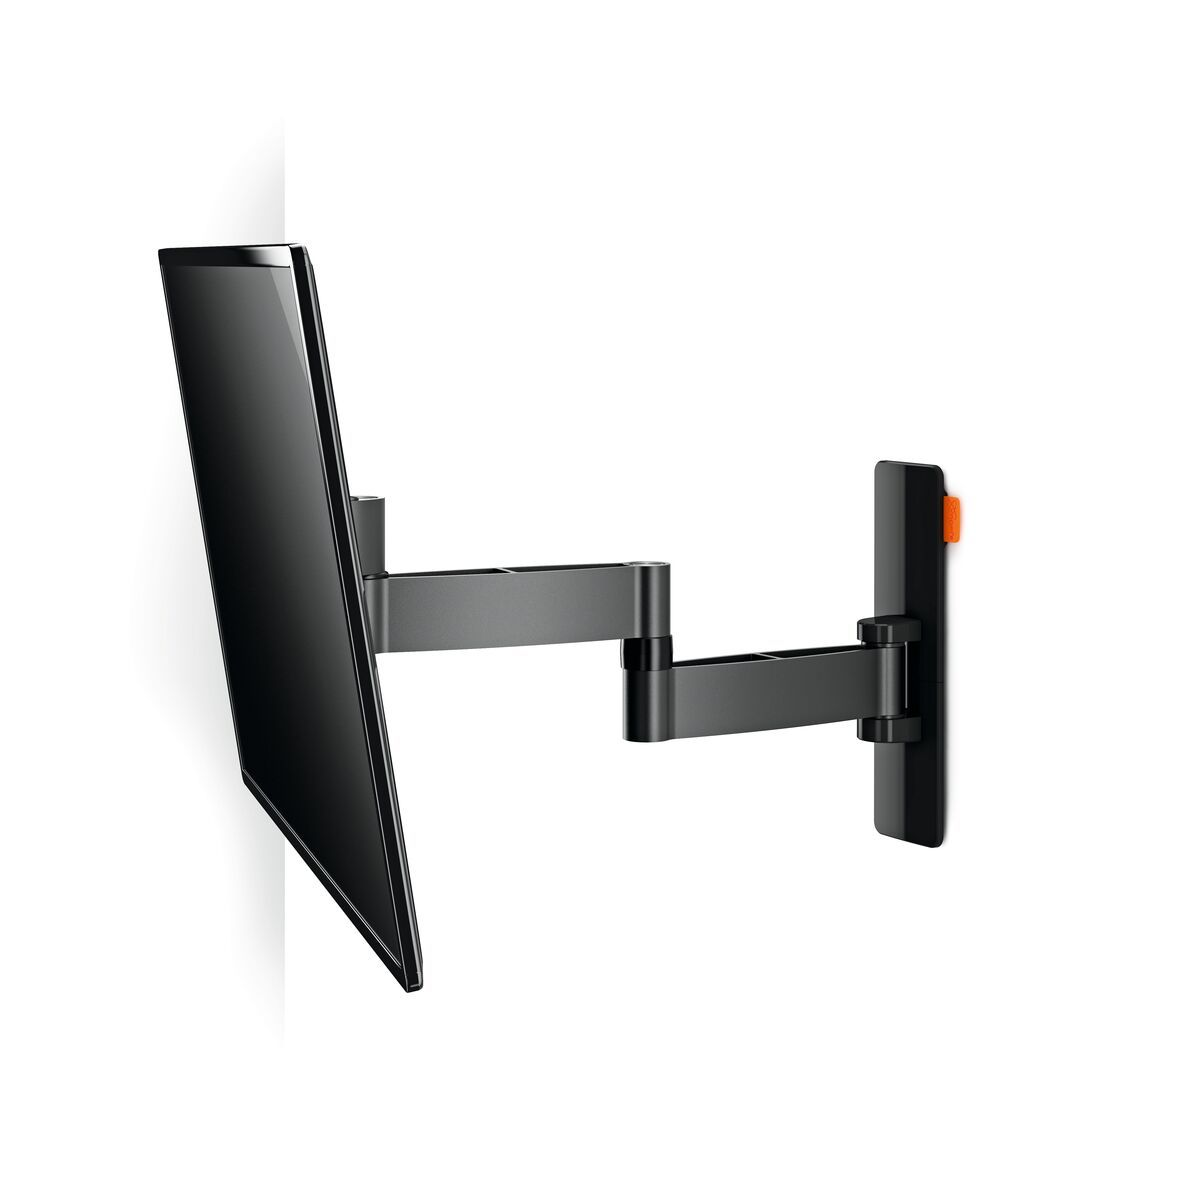 Vogel's WALL 3145 Full-Motion TV Wall Mount (black) - Suitable for 19 up to 43 inch TVs - Full motion (up to 180°) - Tilt -10°/+10° - White wall